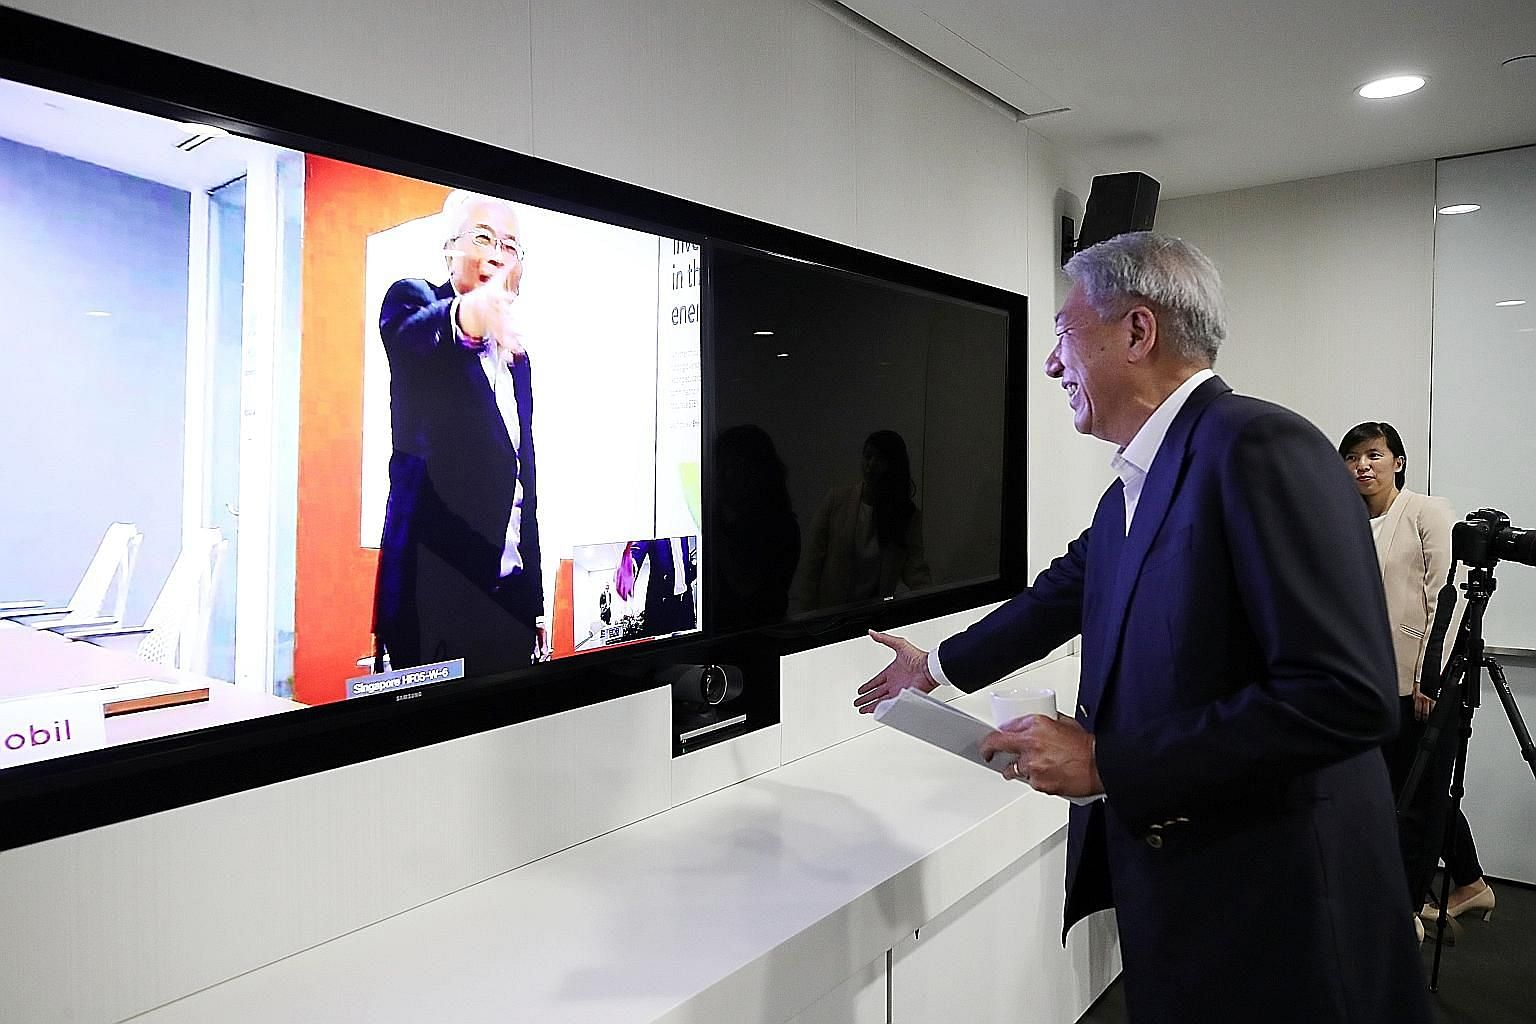 Senior Minister Teo Chee Hean participating in a virtual conference yesterday with Mr Gan Seow Kee, chairman and managing director of ExxonMobil Asia Pacific.